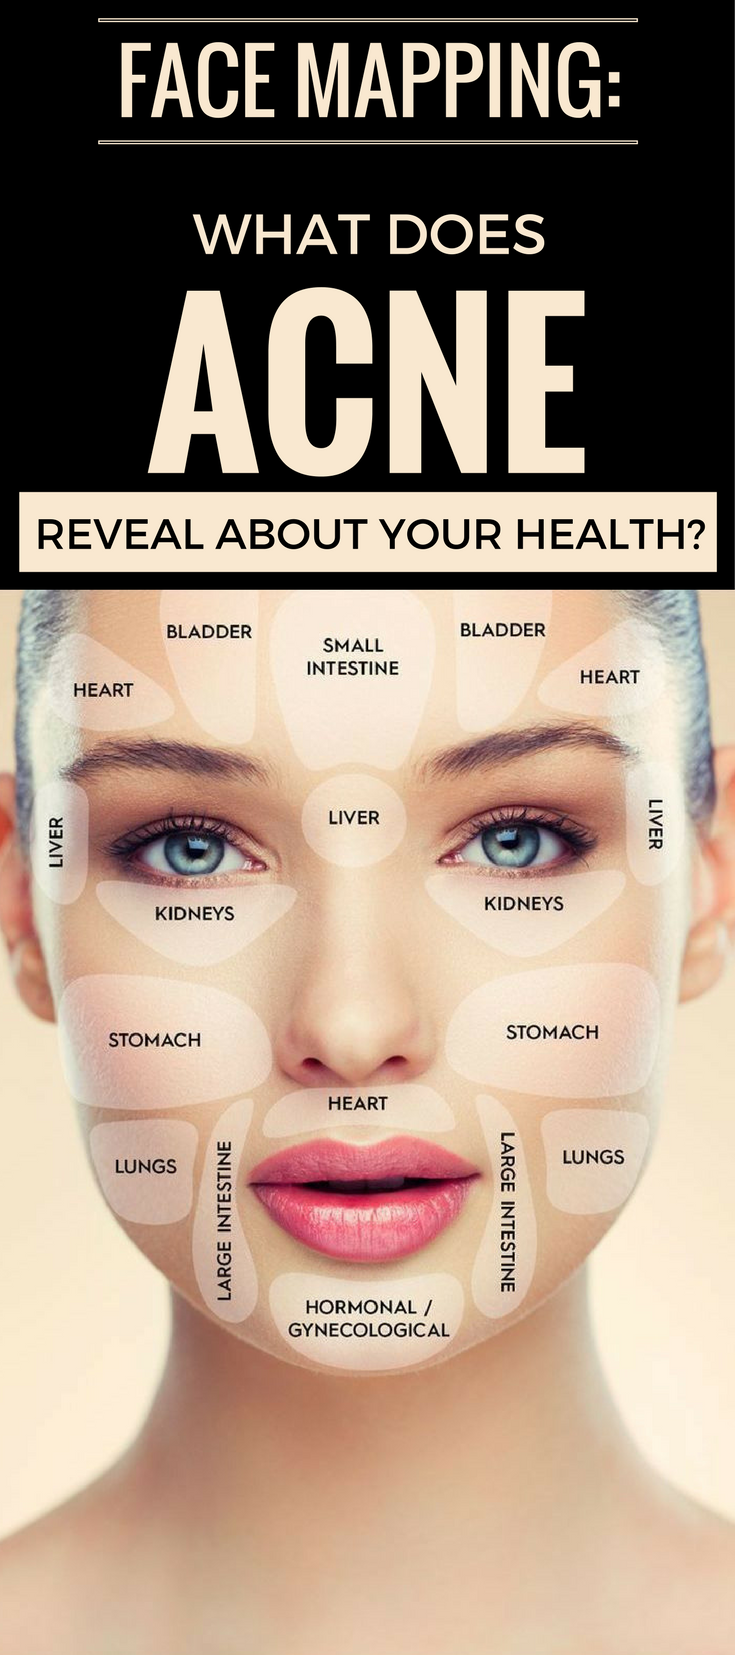 When  pimple appears we immediately think to aesthetic problems how make that giant also face mapping what does acne reveal about your health dietas rh ar pinterest